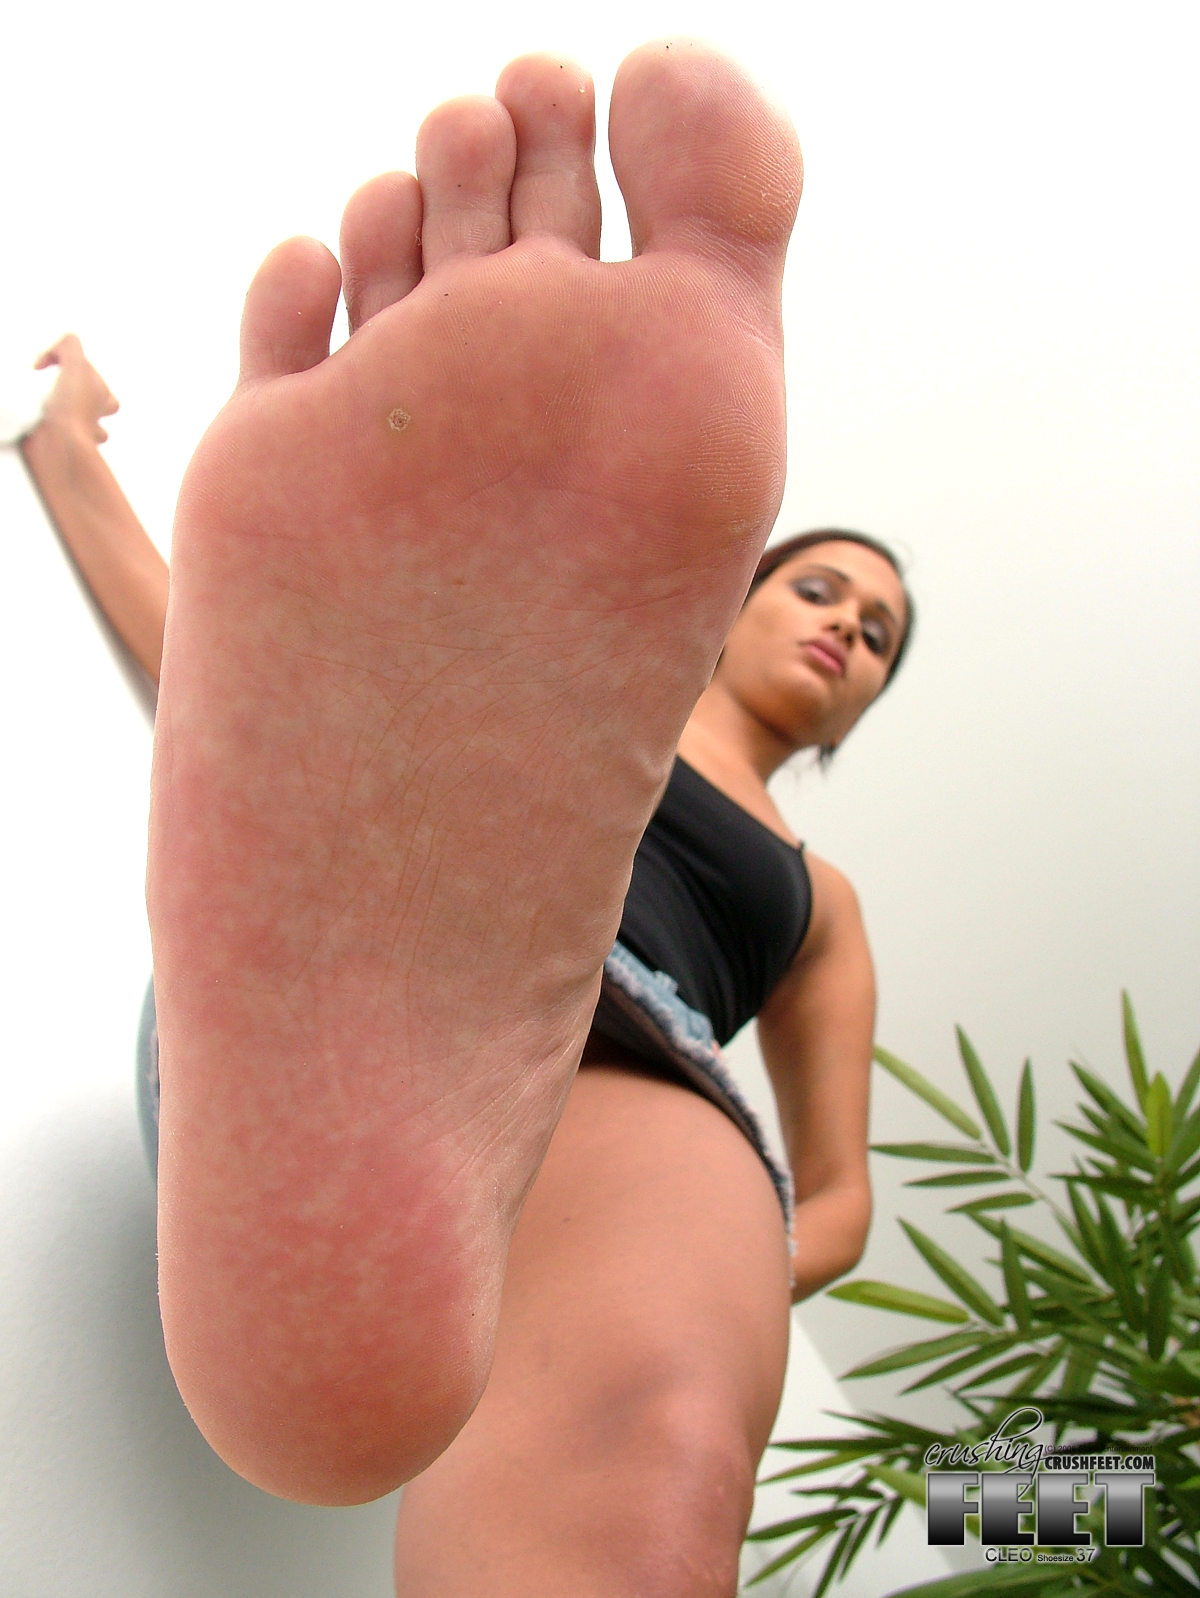 Girl Feet Humiliation Pov